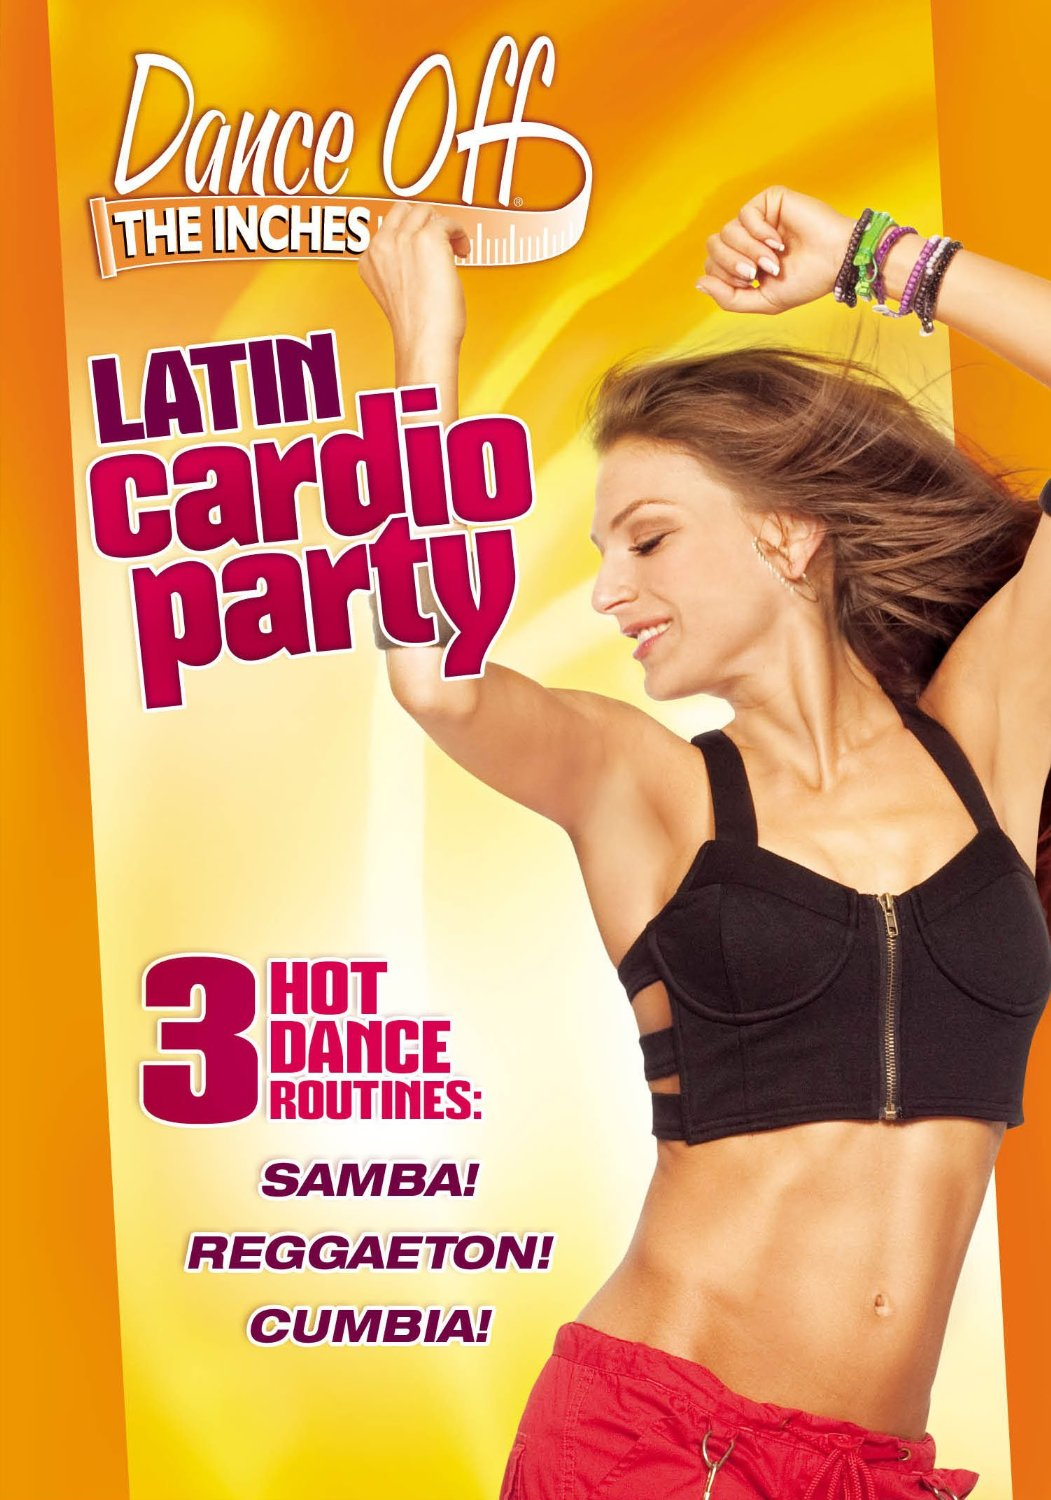 Workout DVDs- Dance Off the Inches: Latin Cardio Party